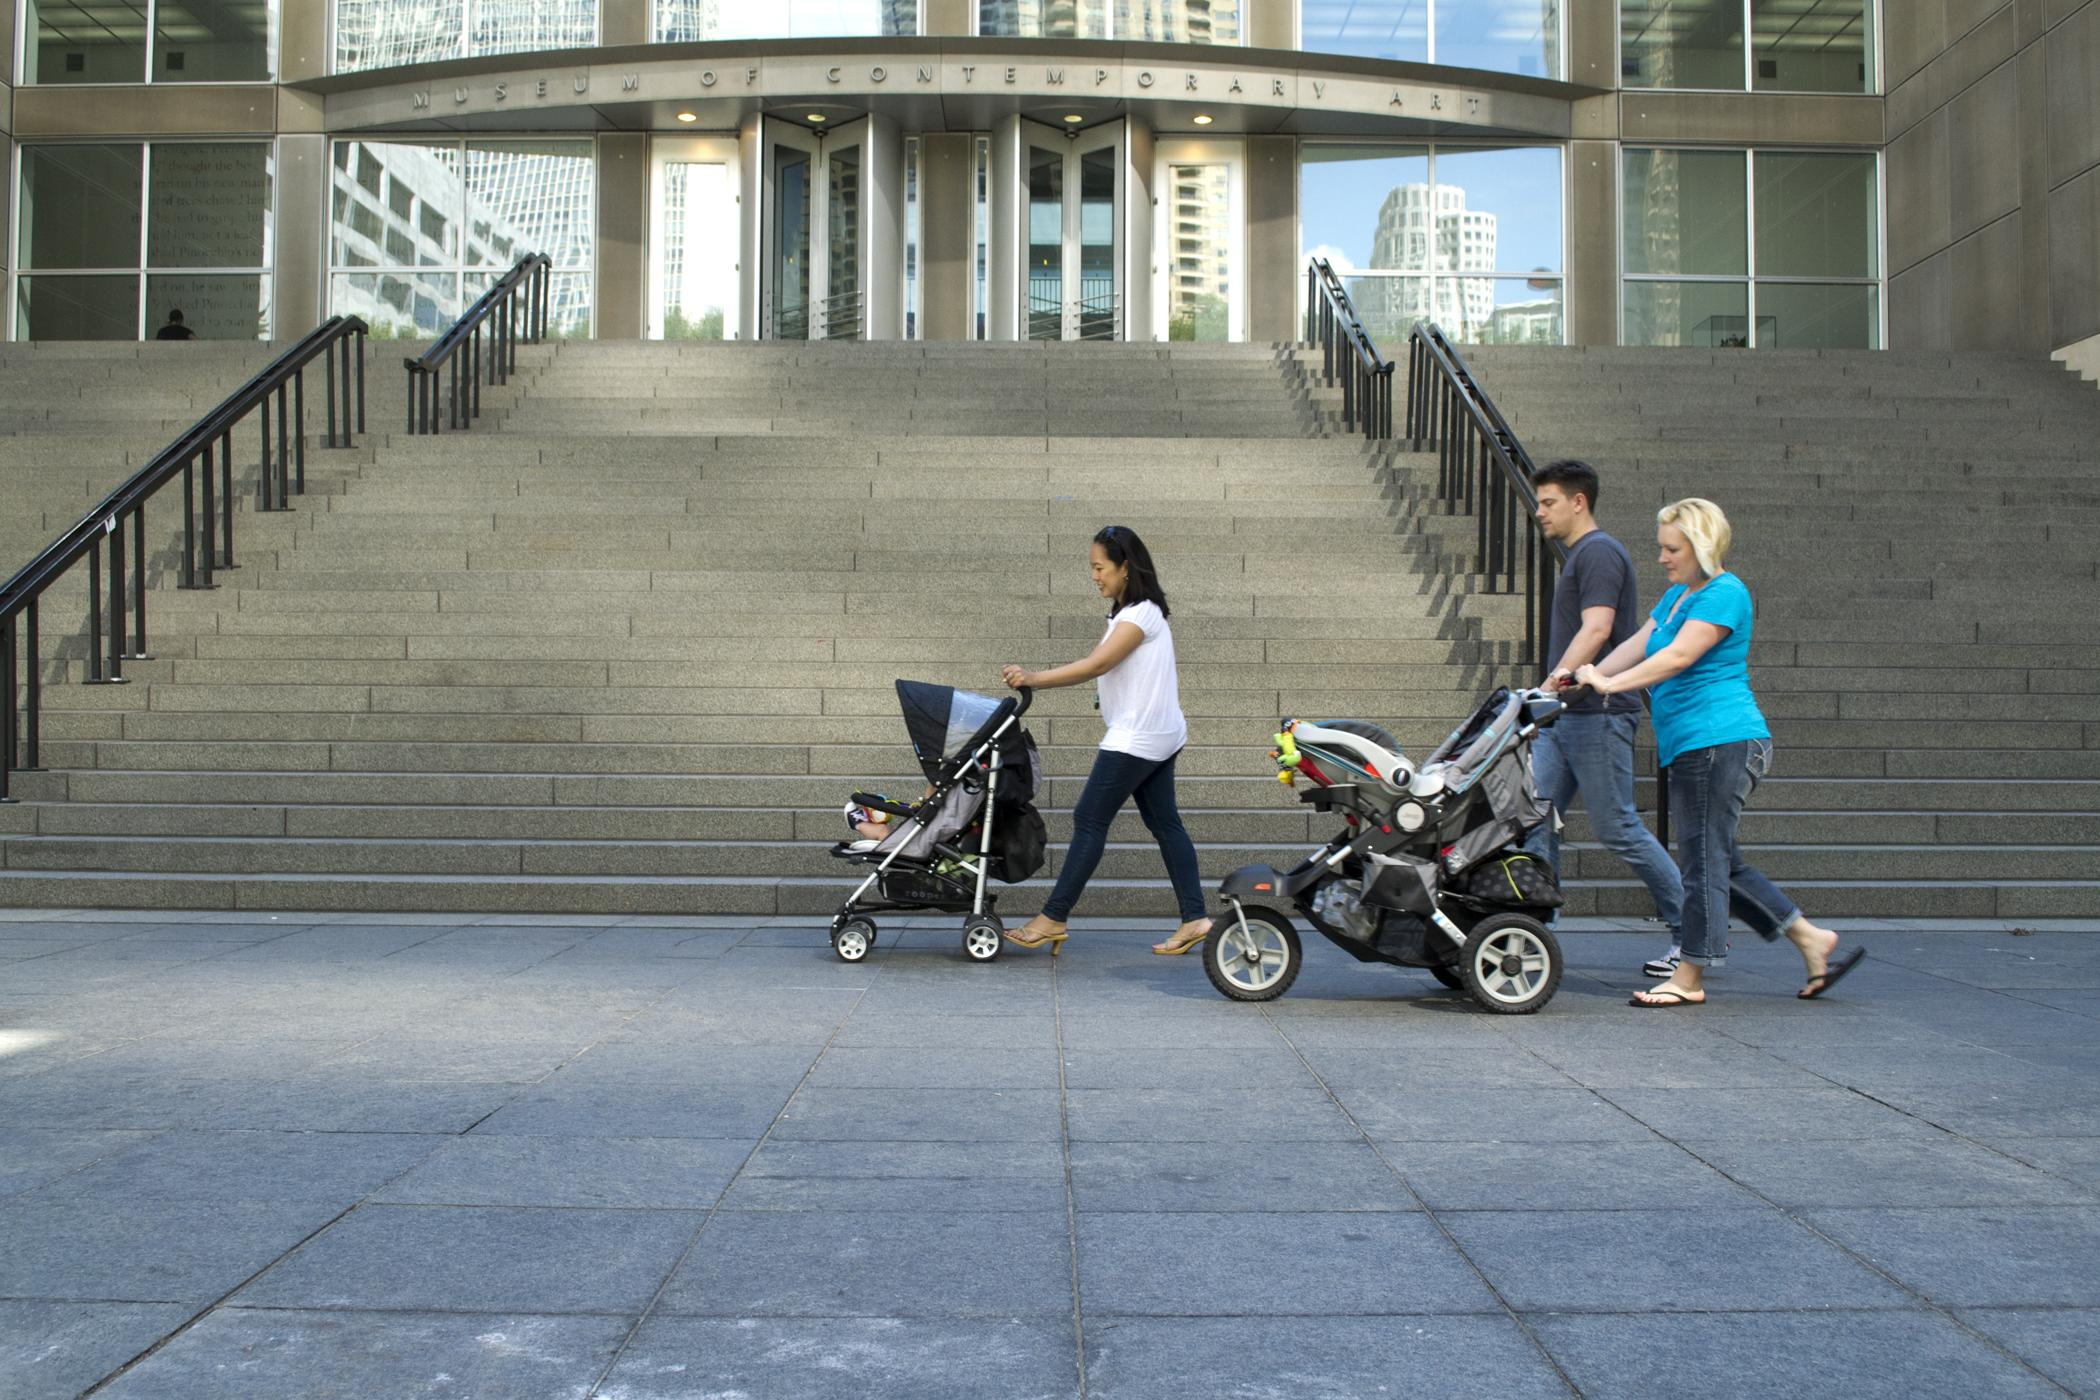 Three young people walk across the MCA plaza on a warm day, two push strollers.